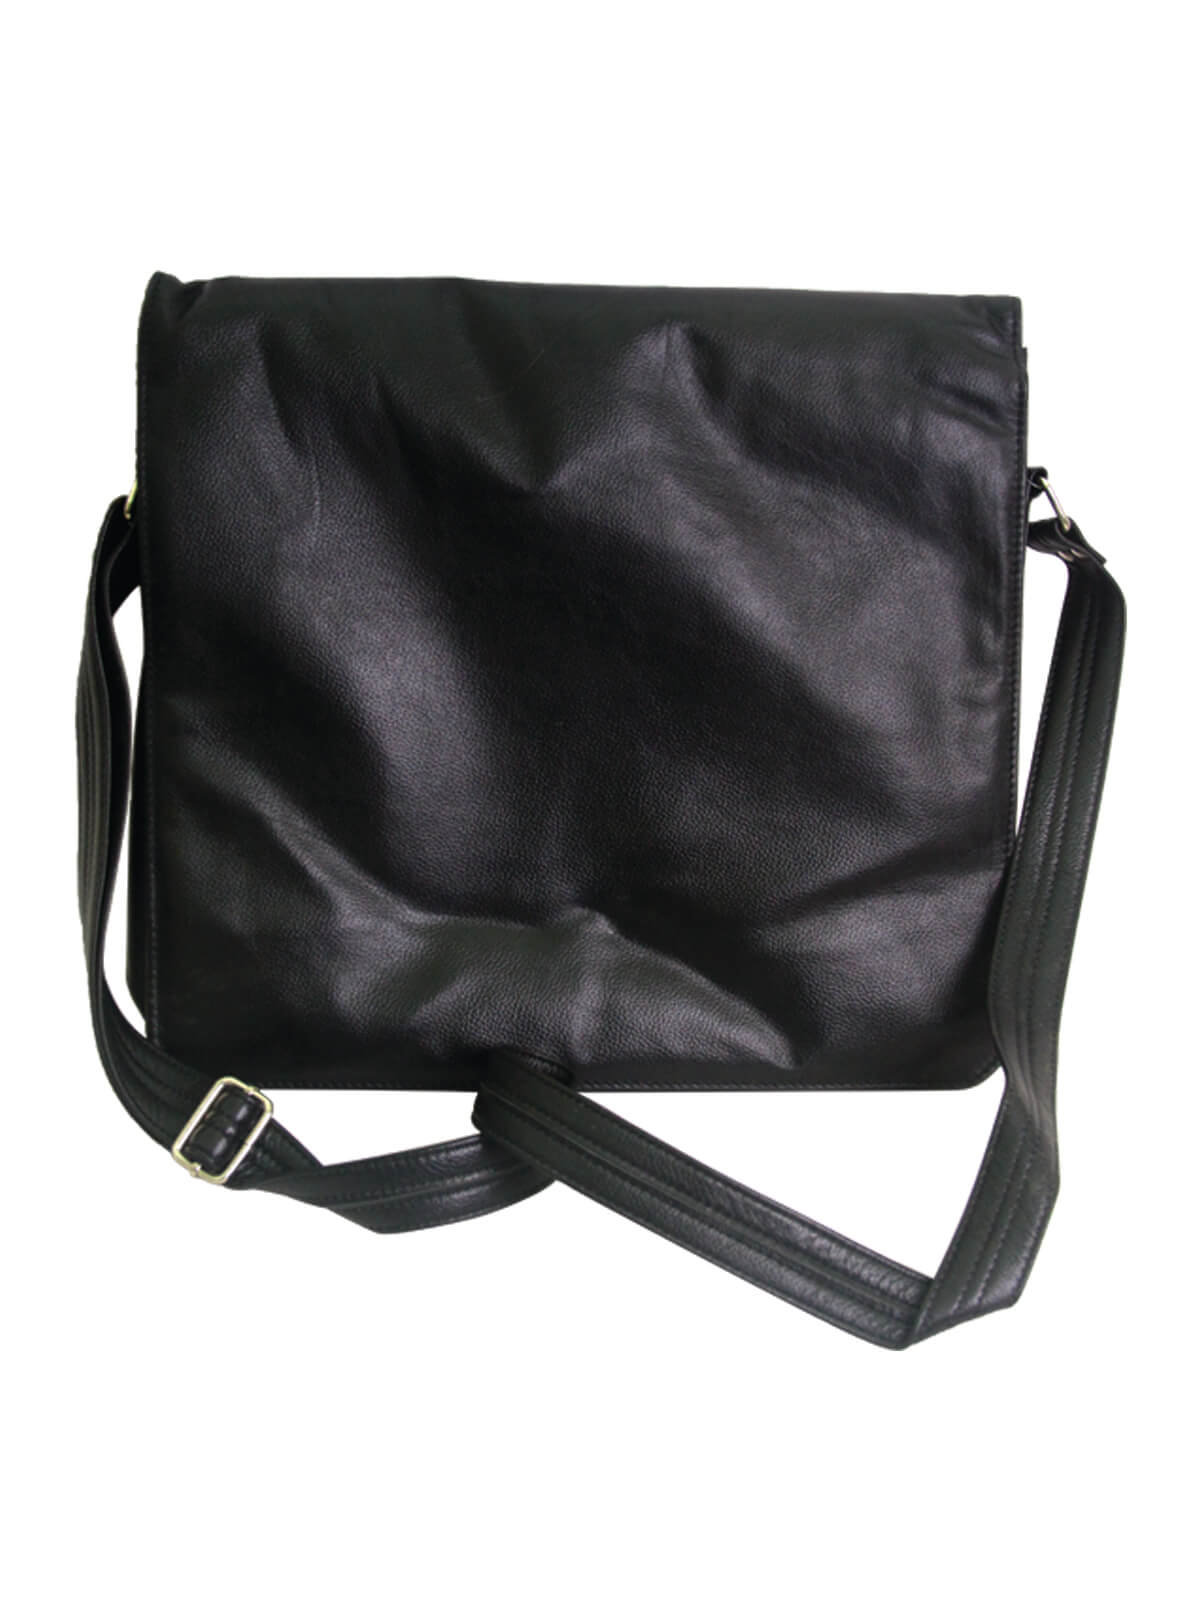 Black Big Size College Bag